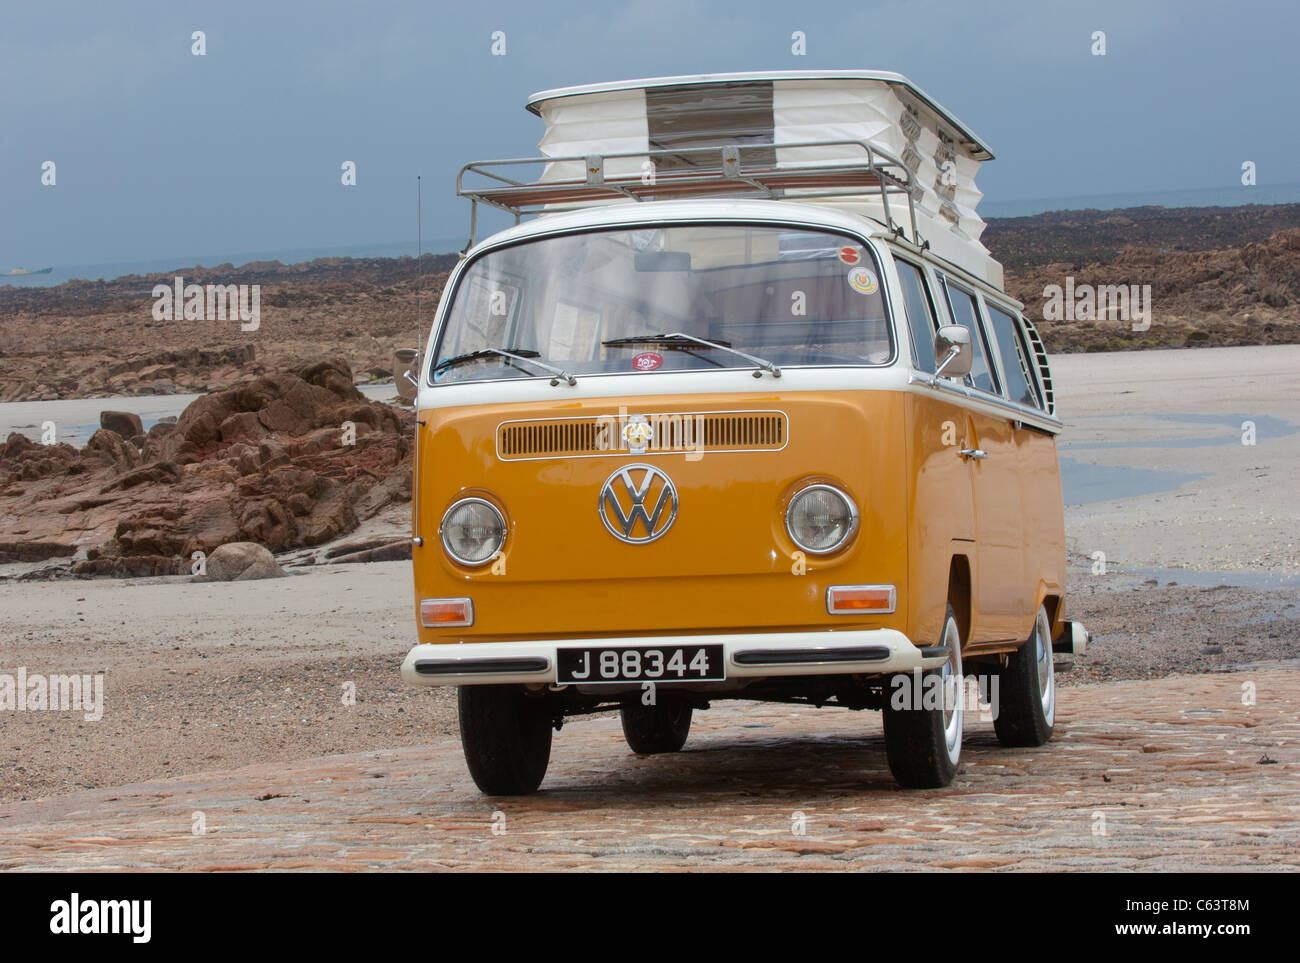 VW Volkswagen Bay Window Devon Camper Van Classic Air Cooled Rear Engined Pop Up Roof Raised Beach Orange White